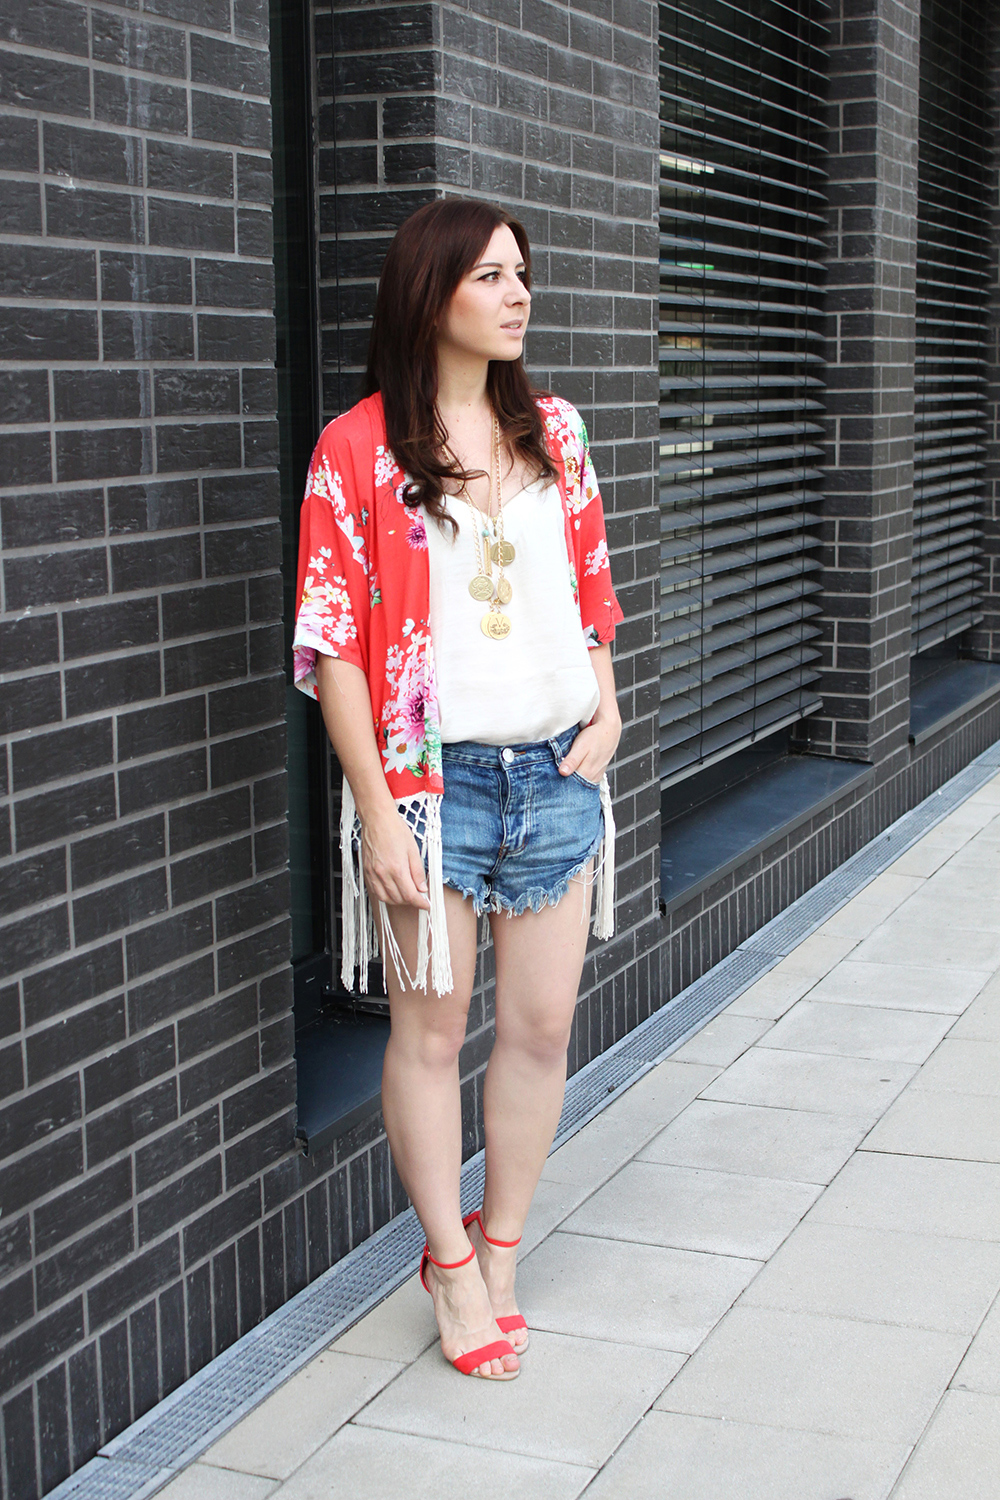 who is mocca? fashionblog tirol, fashionblog österreich, fashionblog deutschland, kimono, blumenkimono, fransen kimono, lilylulu onlineshop kimono, one teaspoon shorts, new yorker shirt, statementkette asos, pumps primark, sandaletten orange nude, great lengths extension